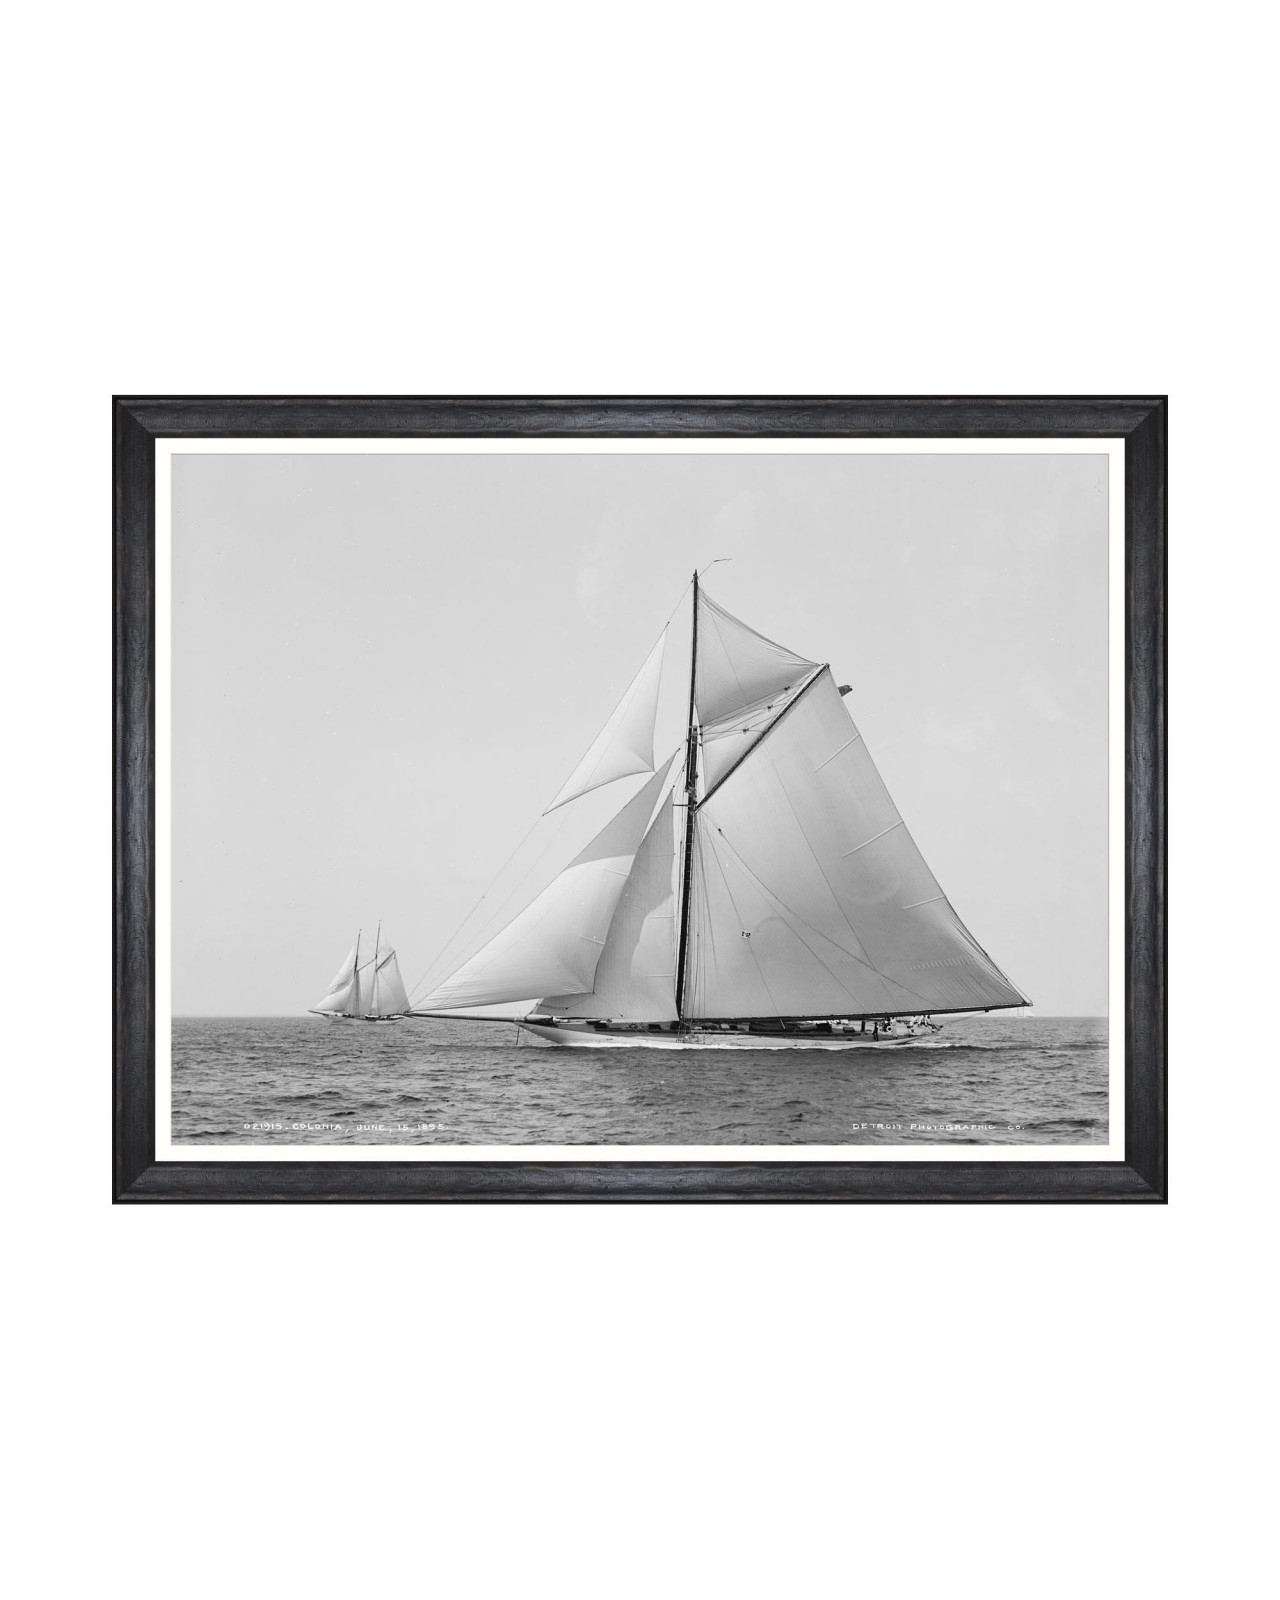 Tablou Framed Art America's Cup - Colonia 1895, 80 x 60 cm imagine